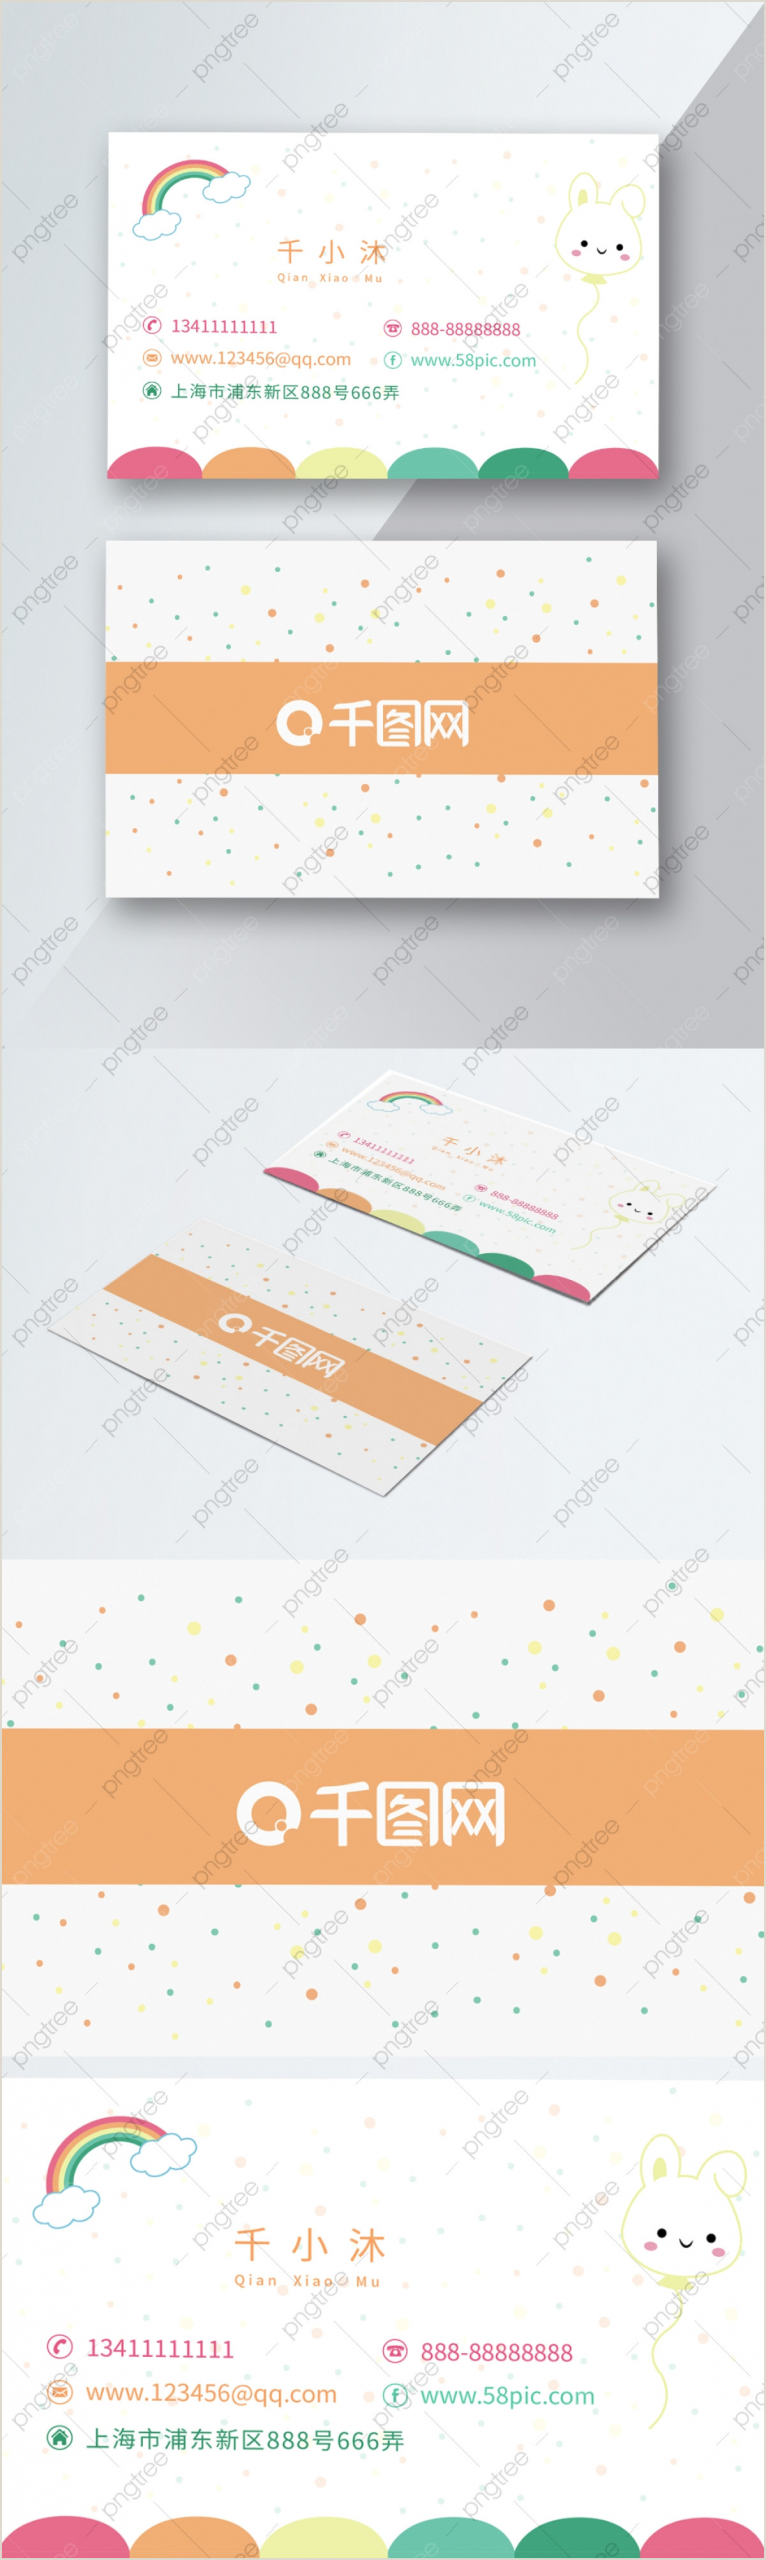 Cute Business Card Designs Cute Business Card Png Vector And Psd Files